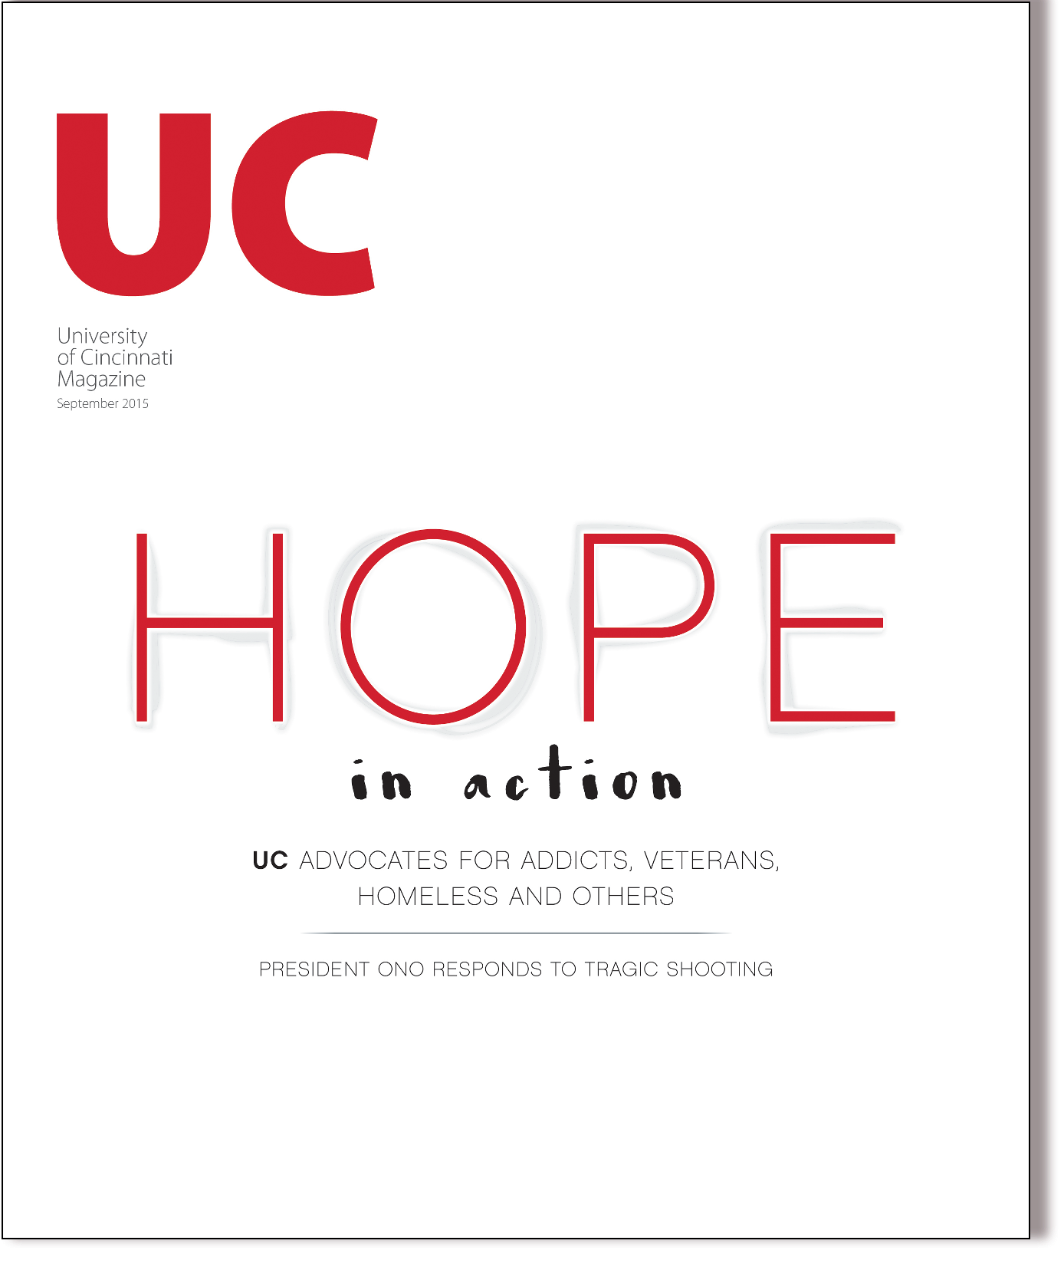 Cover of the University of Cincinnati magazine September 2015 edition